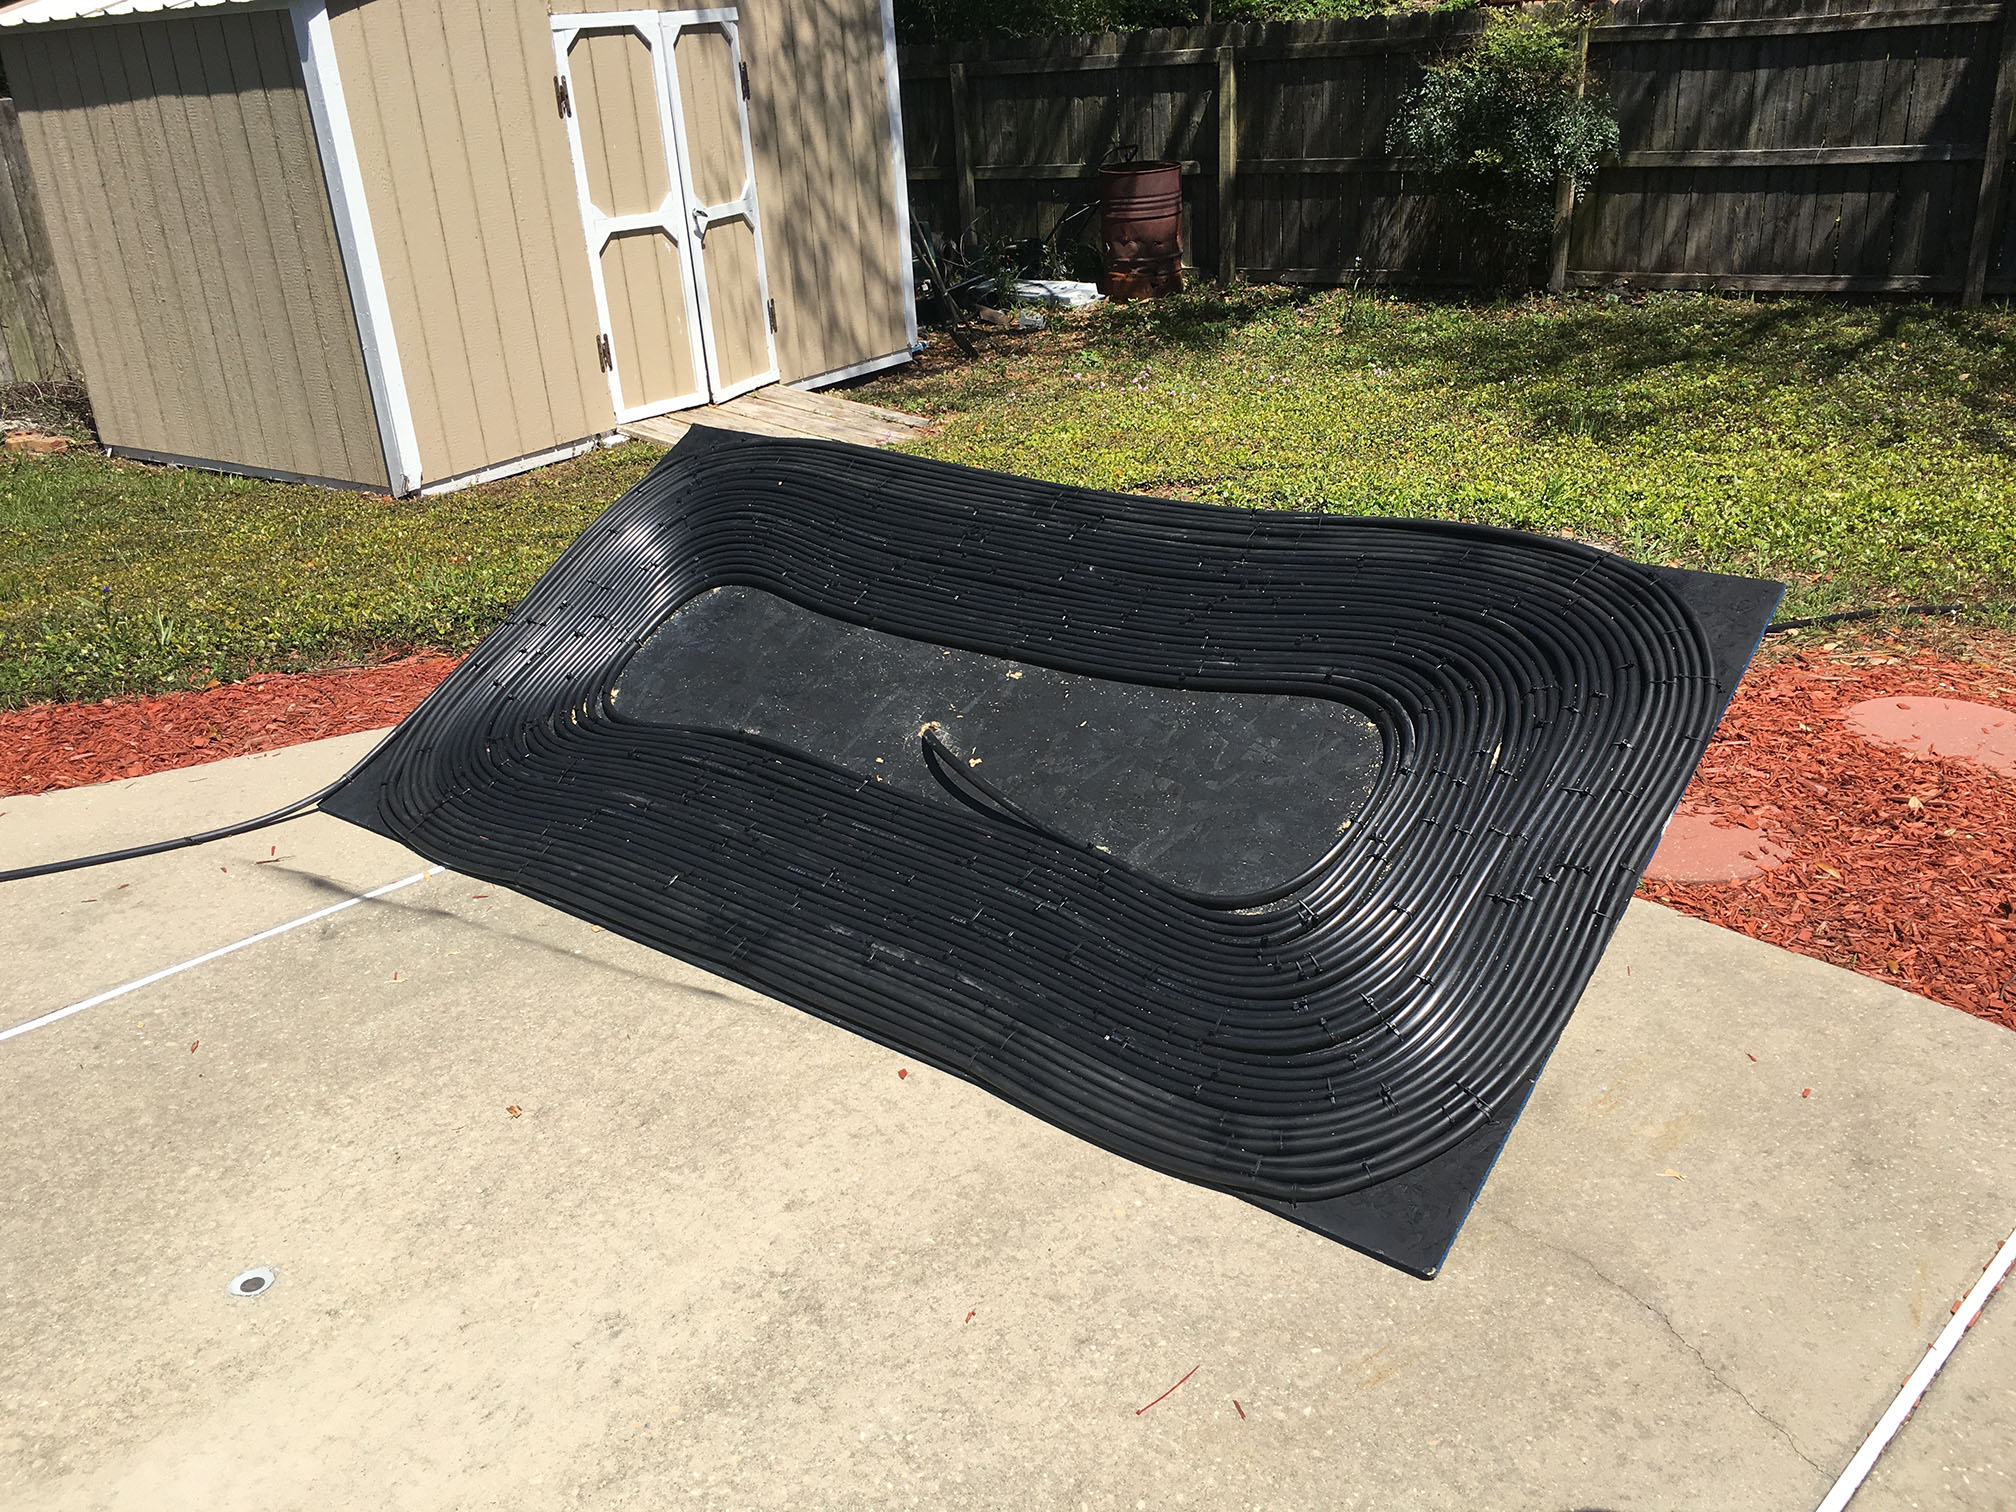 Tag: DIY Solar Pool Heater Black Hose | Half Ass Craftsman